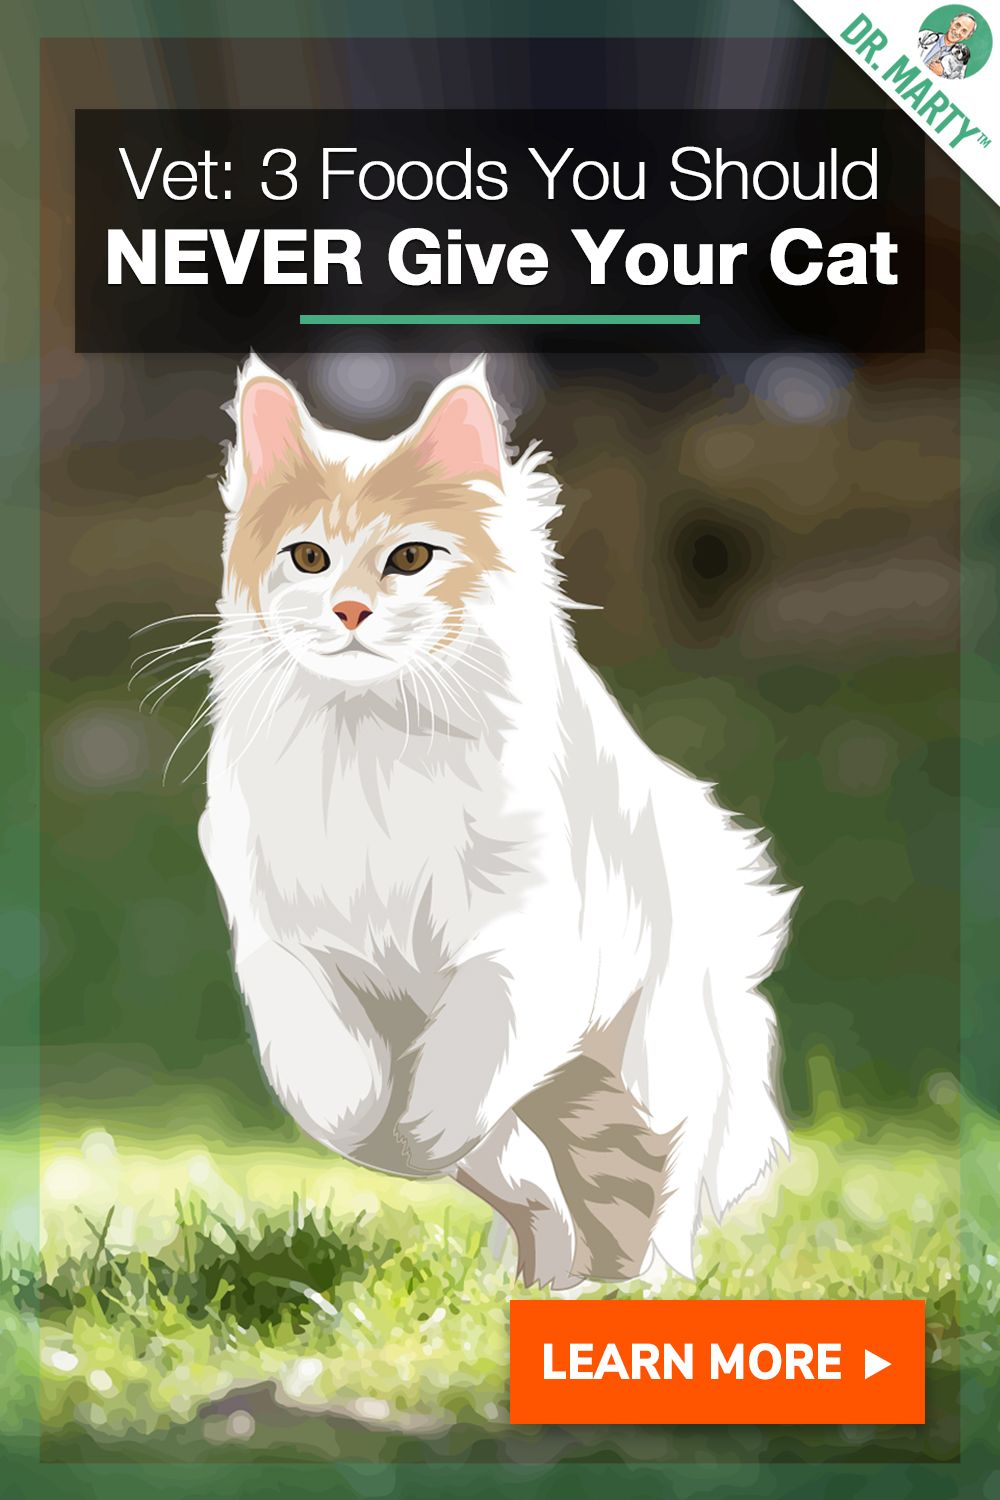 3 Foods You Should Never Give Your Cat Cats, Vets, Animals